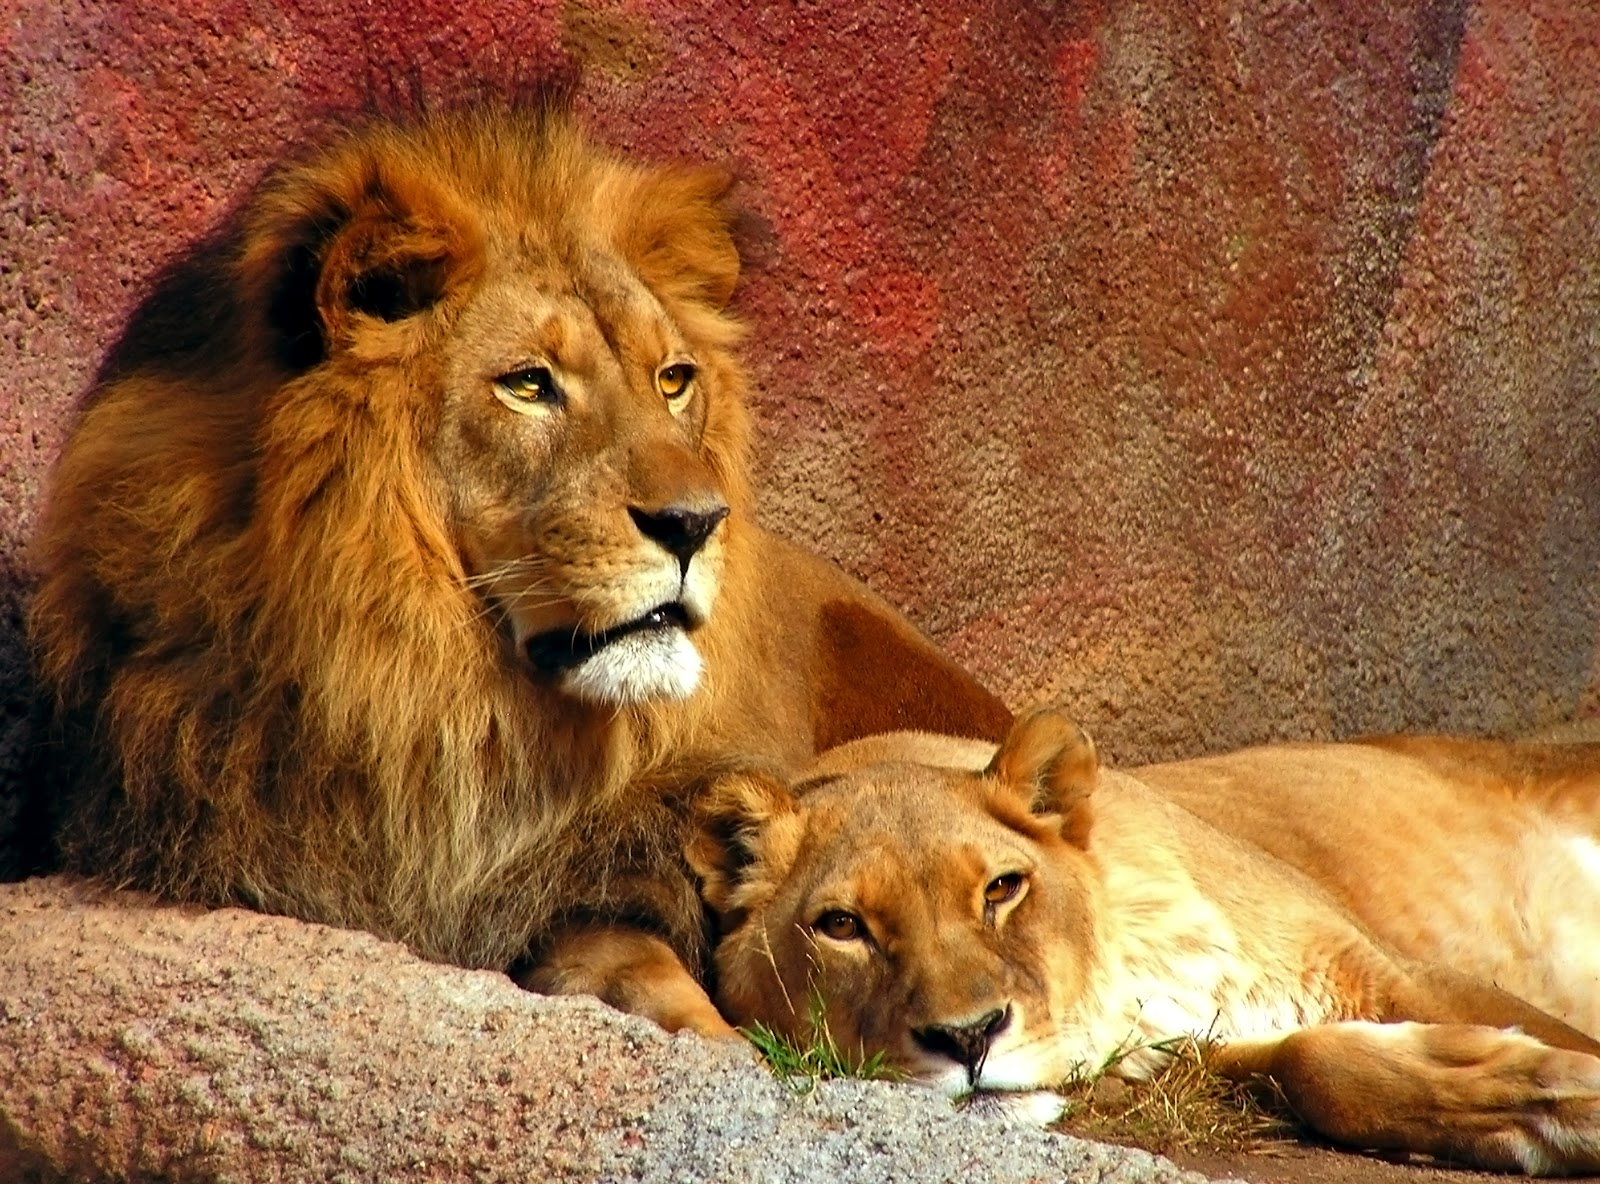 Beautiful Animals Safaris: Amazing Lions: Big Cats Africa39;s Dangerous